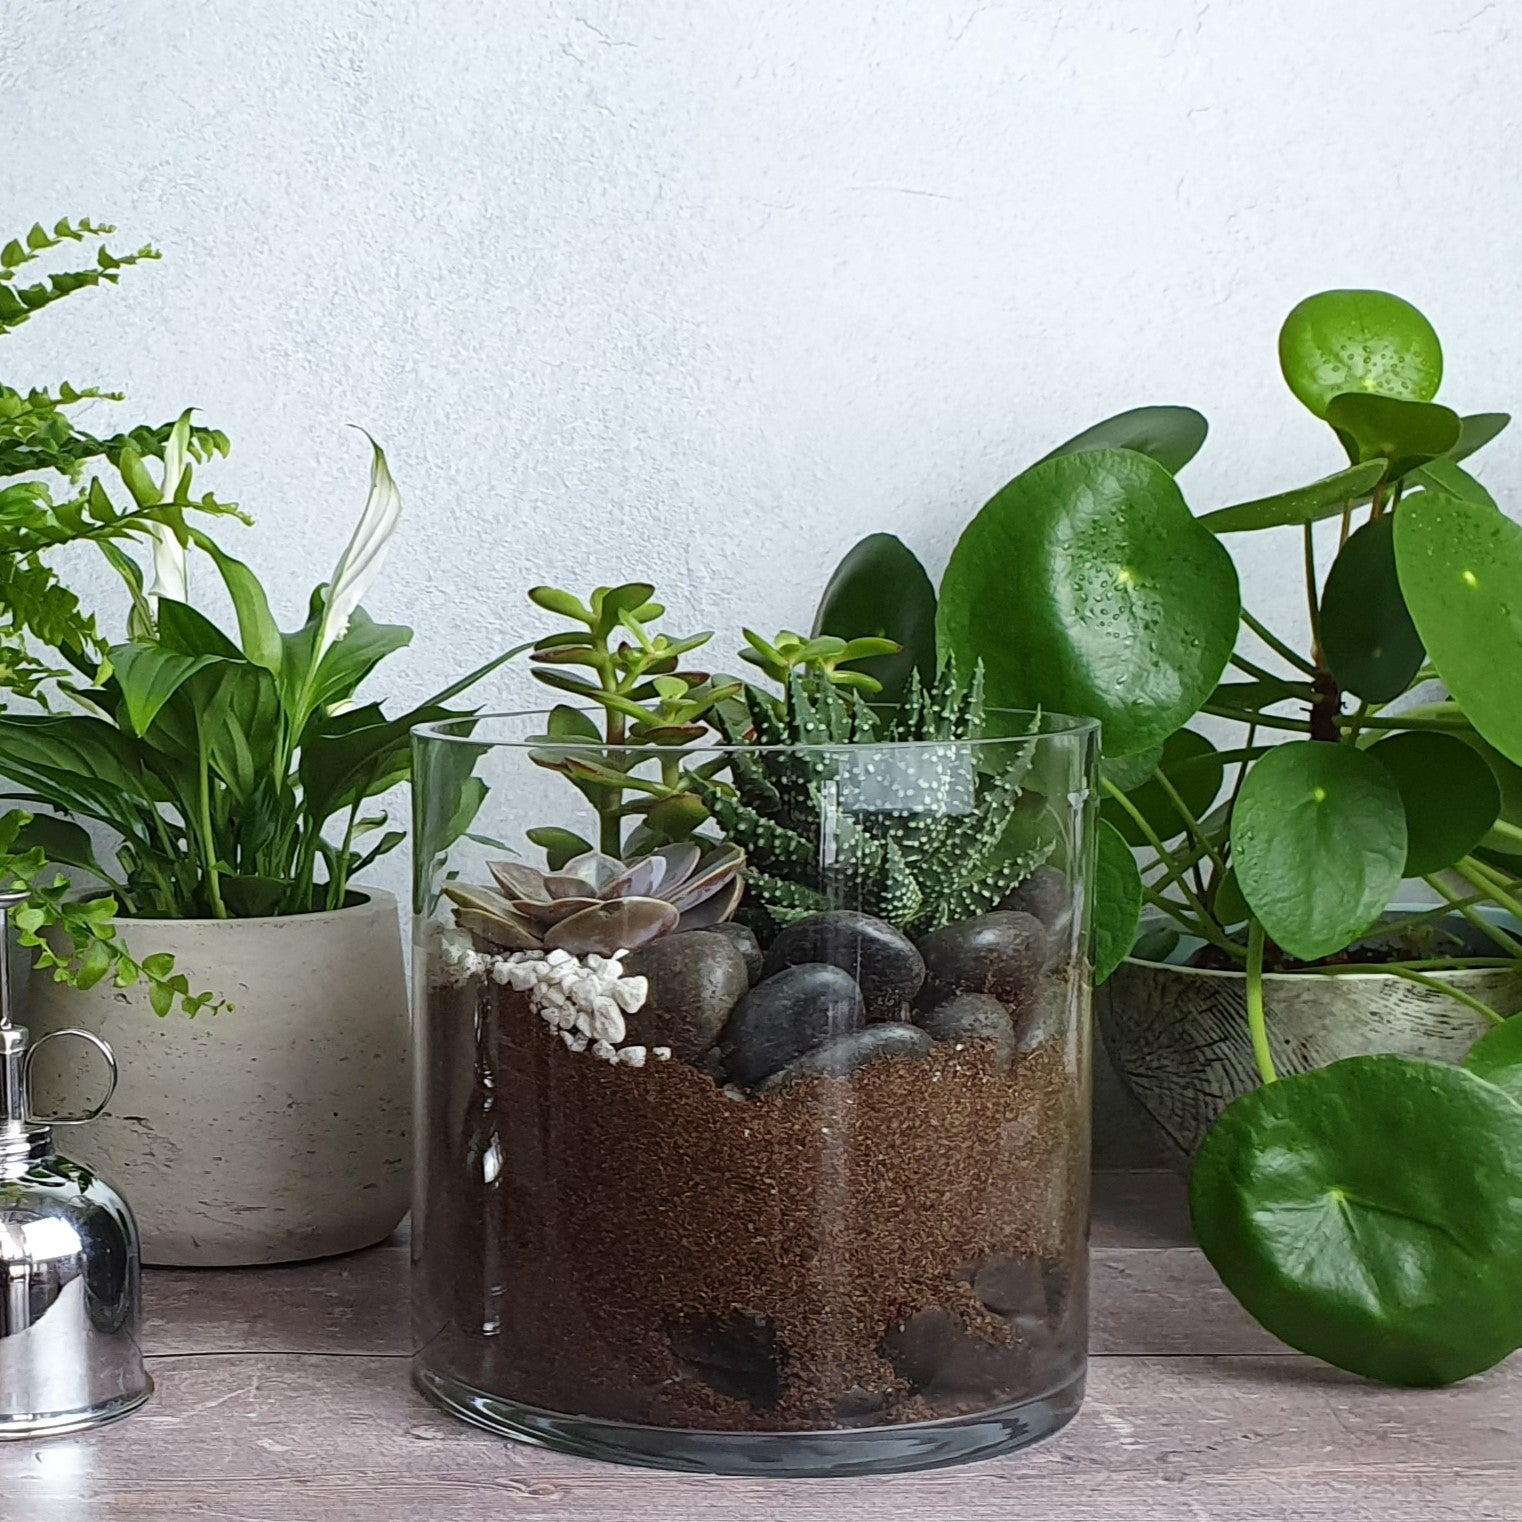 Terrarium & Happy Houseplants Workshop Thursday 18th June